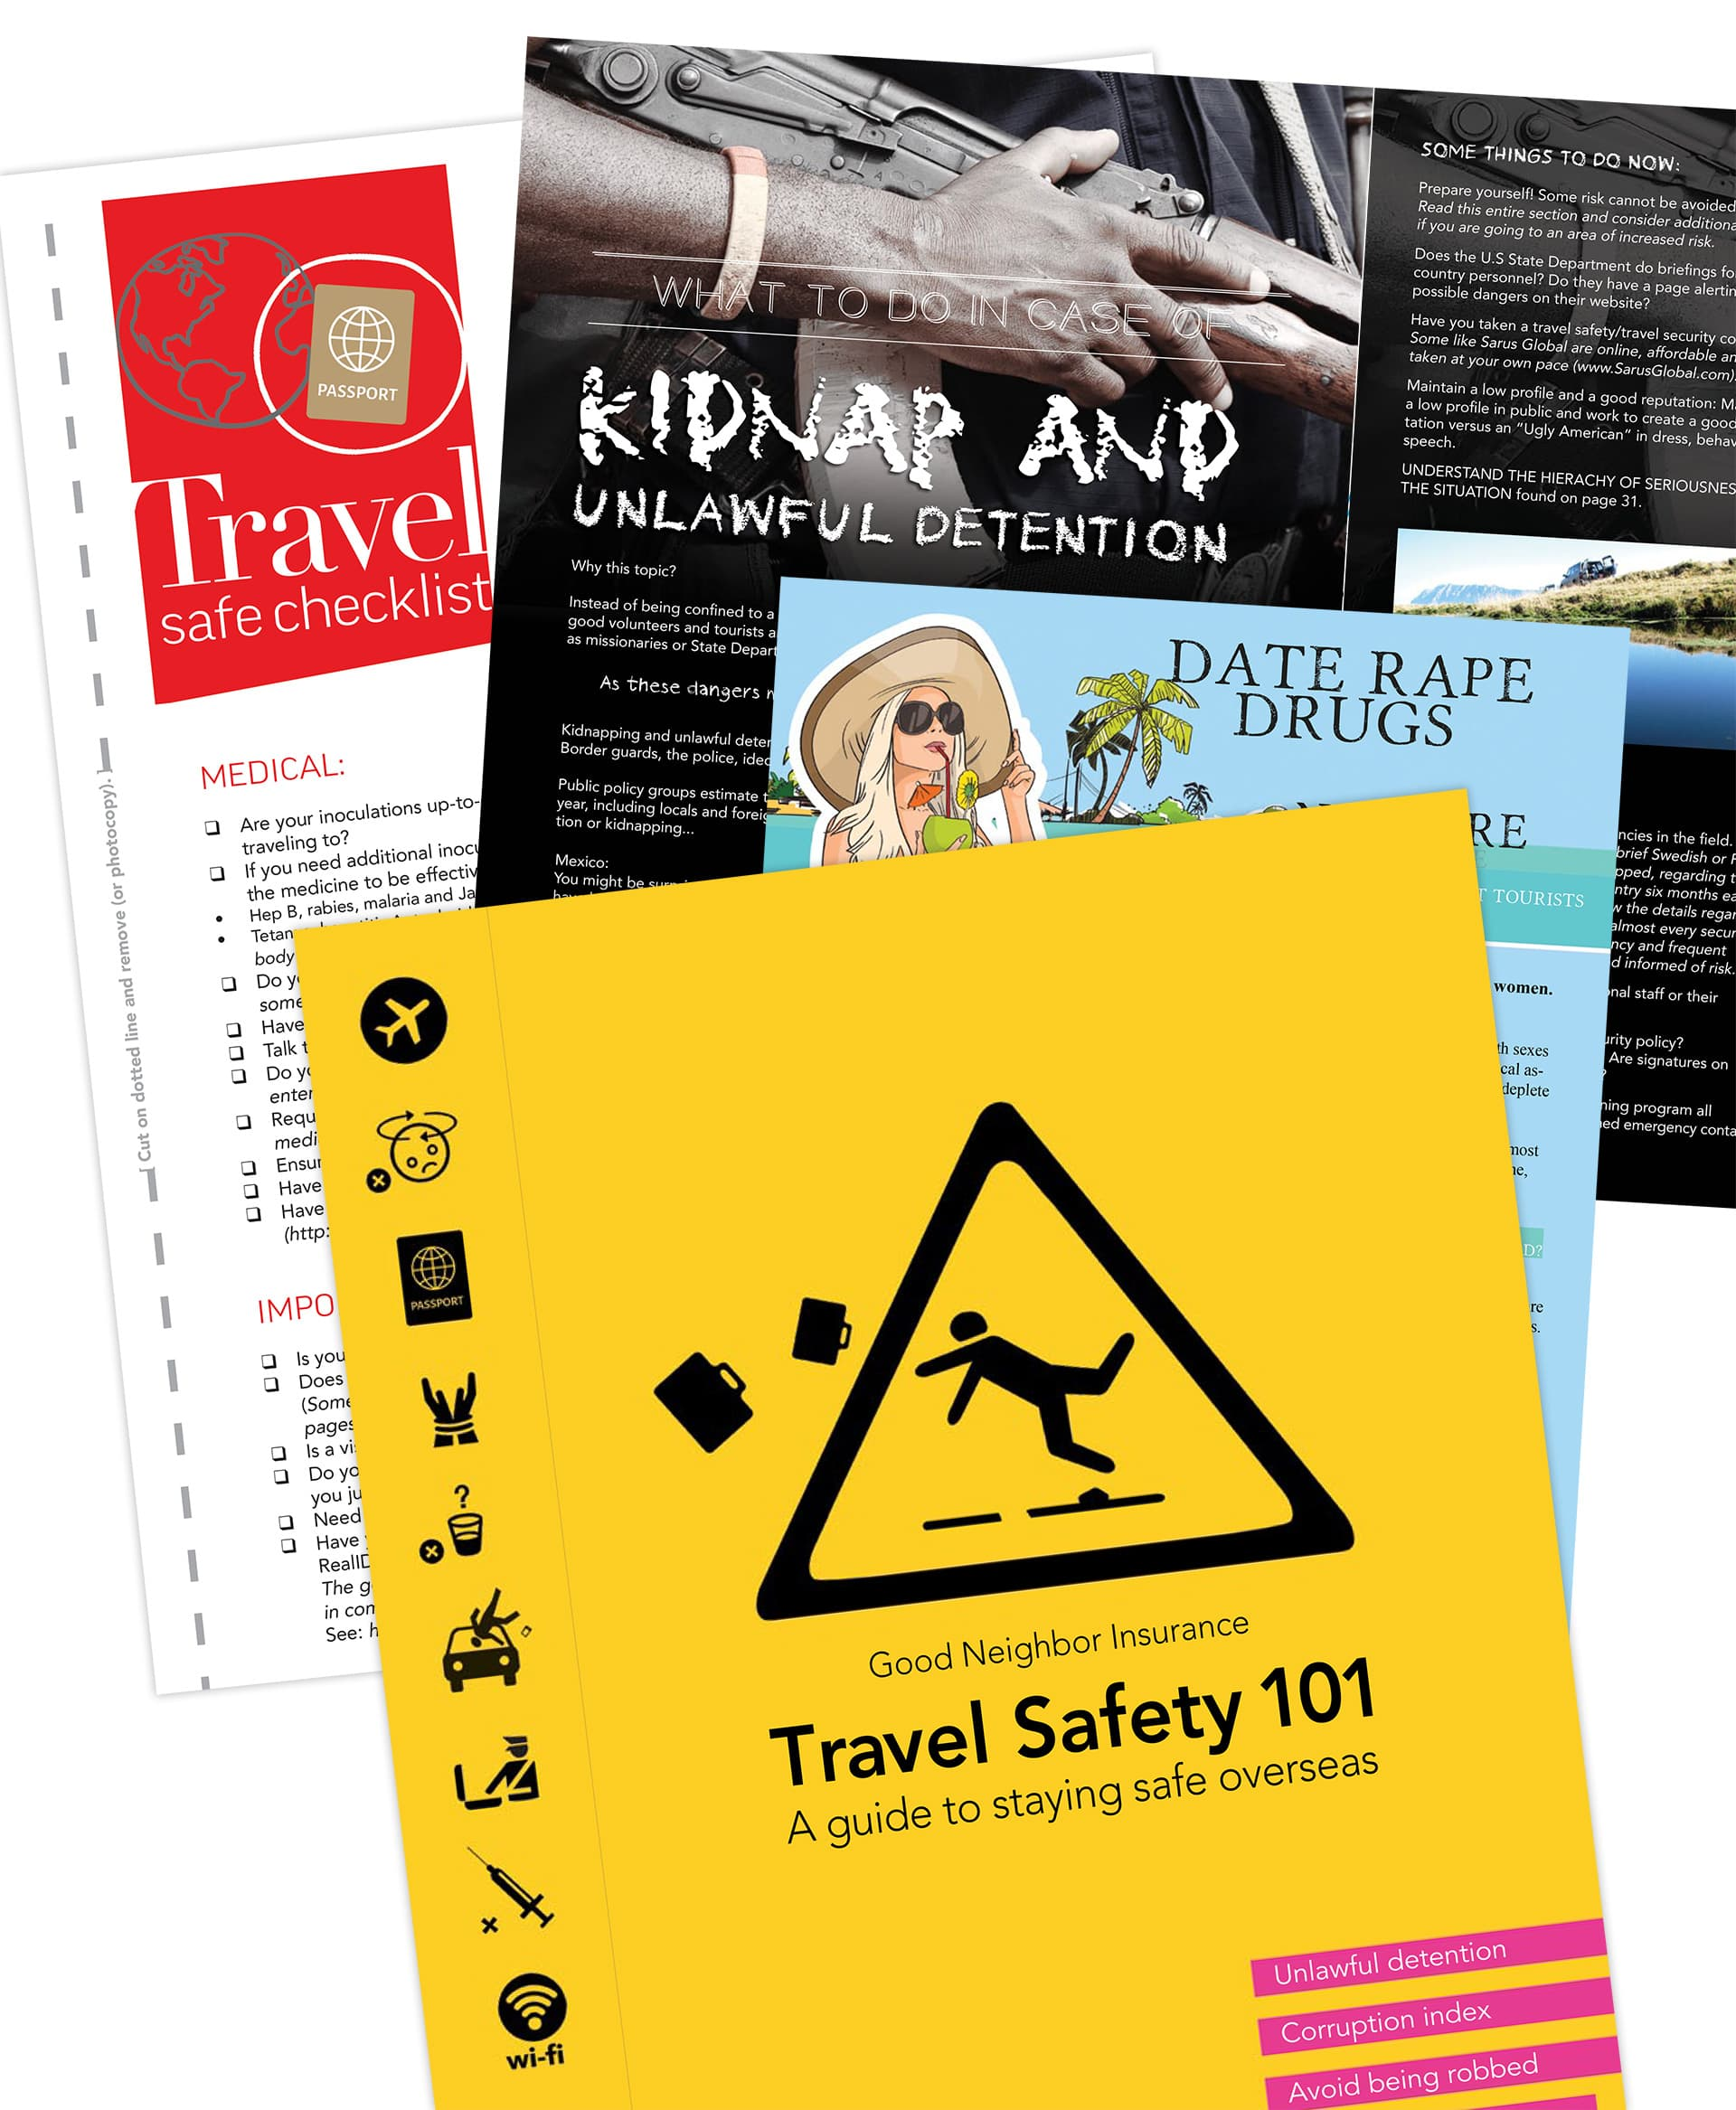 Free guide to travel safety 101